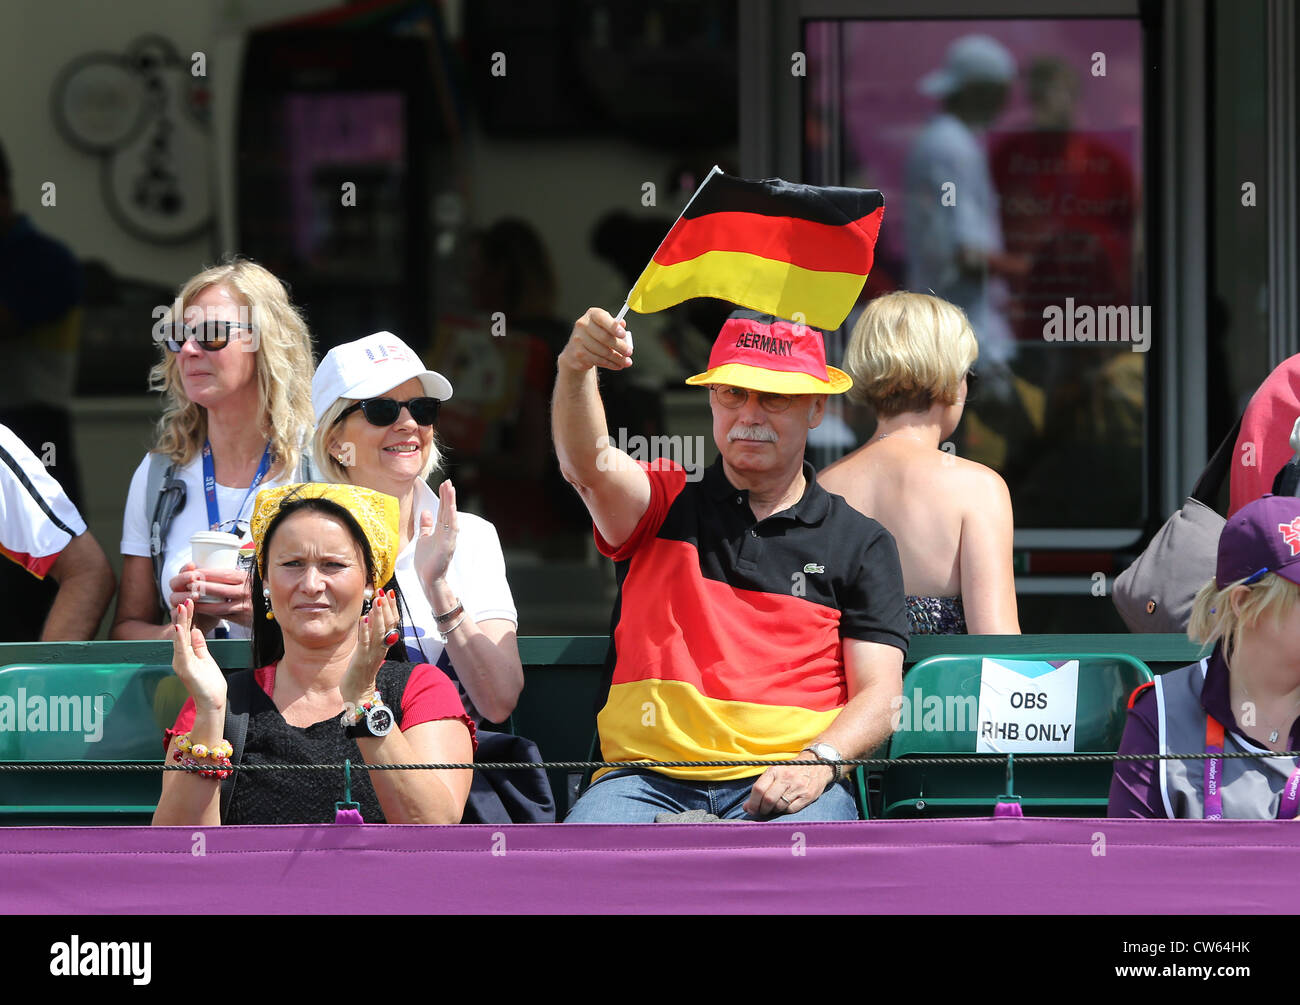 German fans with flag at the Olympic Tennis event at Wimbledon,London 2012, Stock Photo